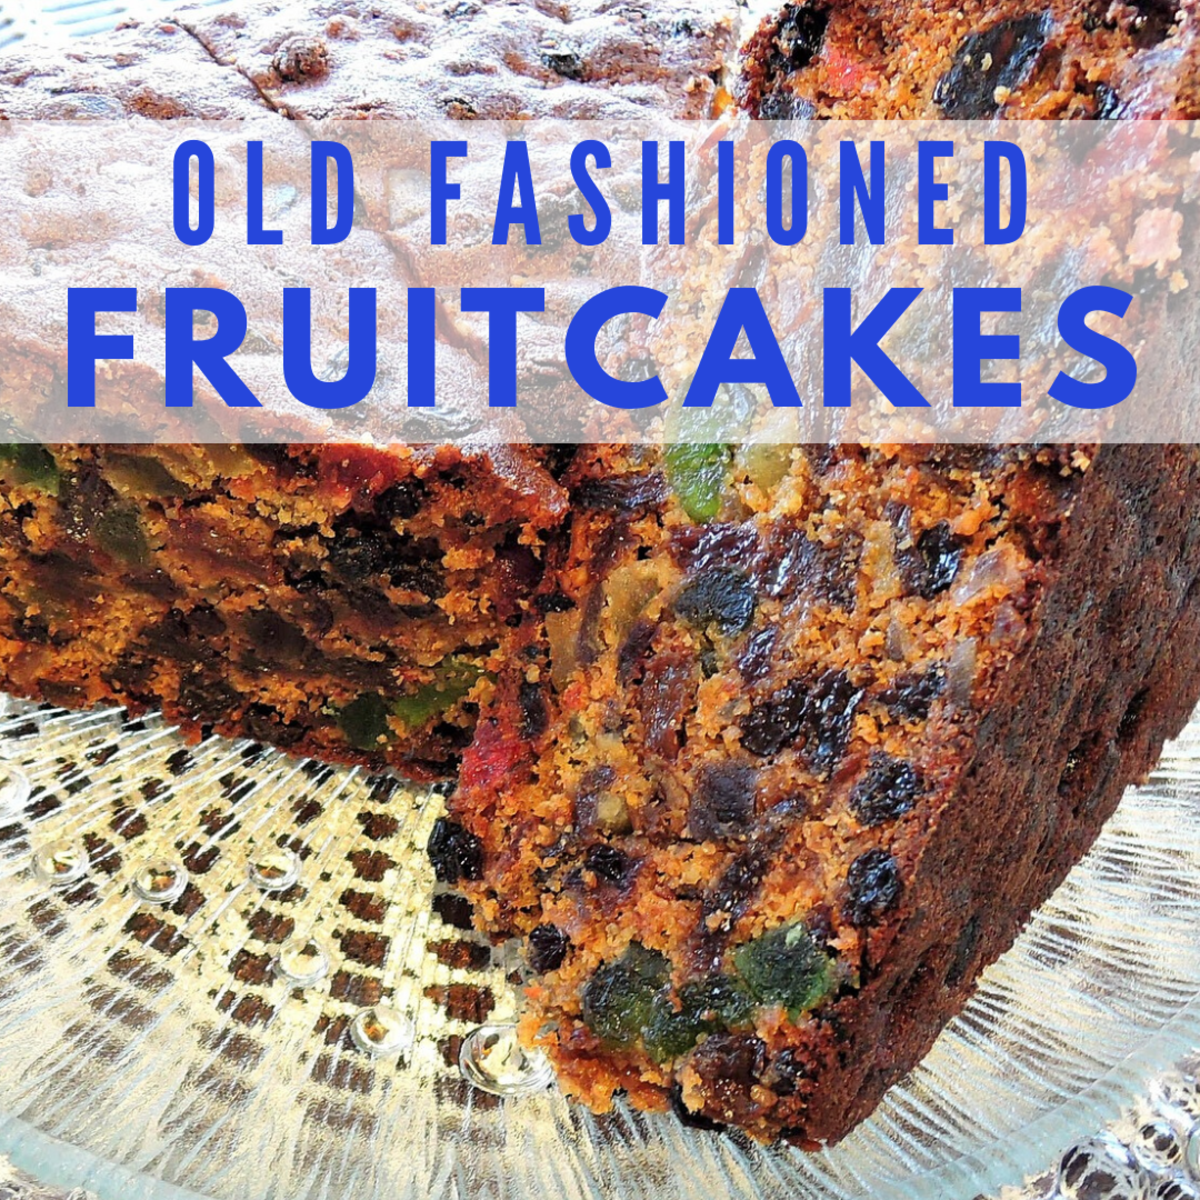 Homemade fruitcake is just so much better than store-bought.